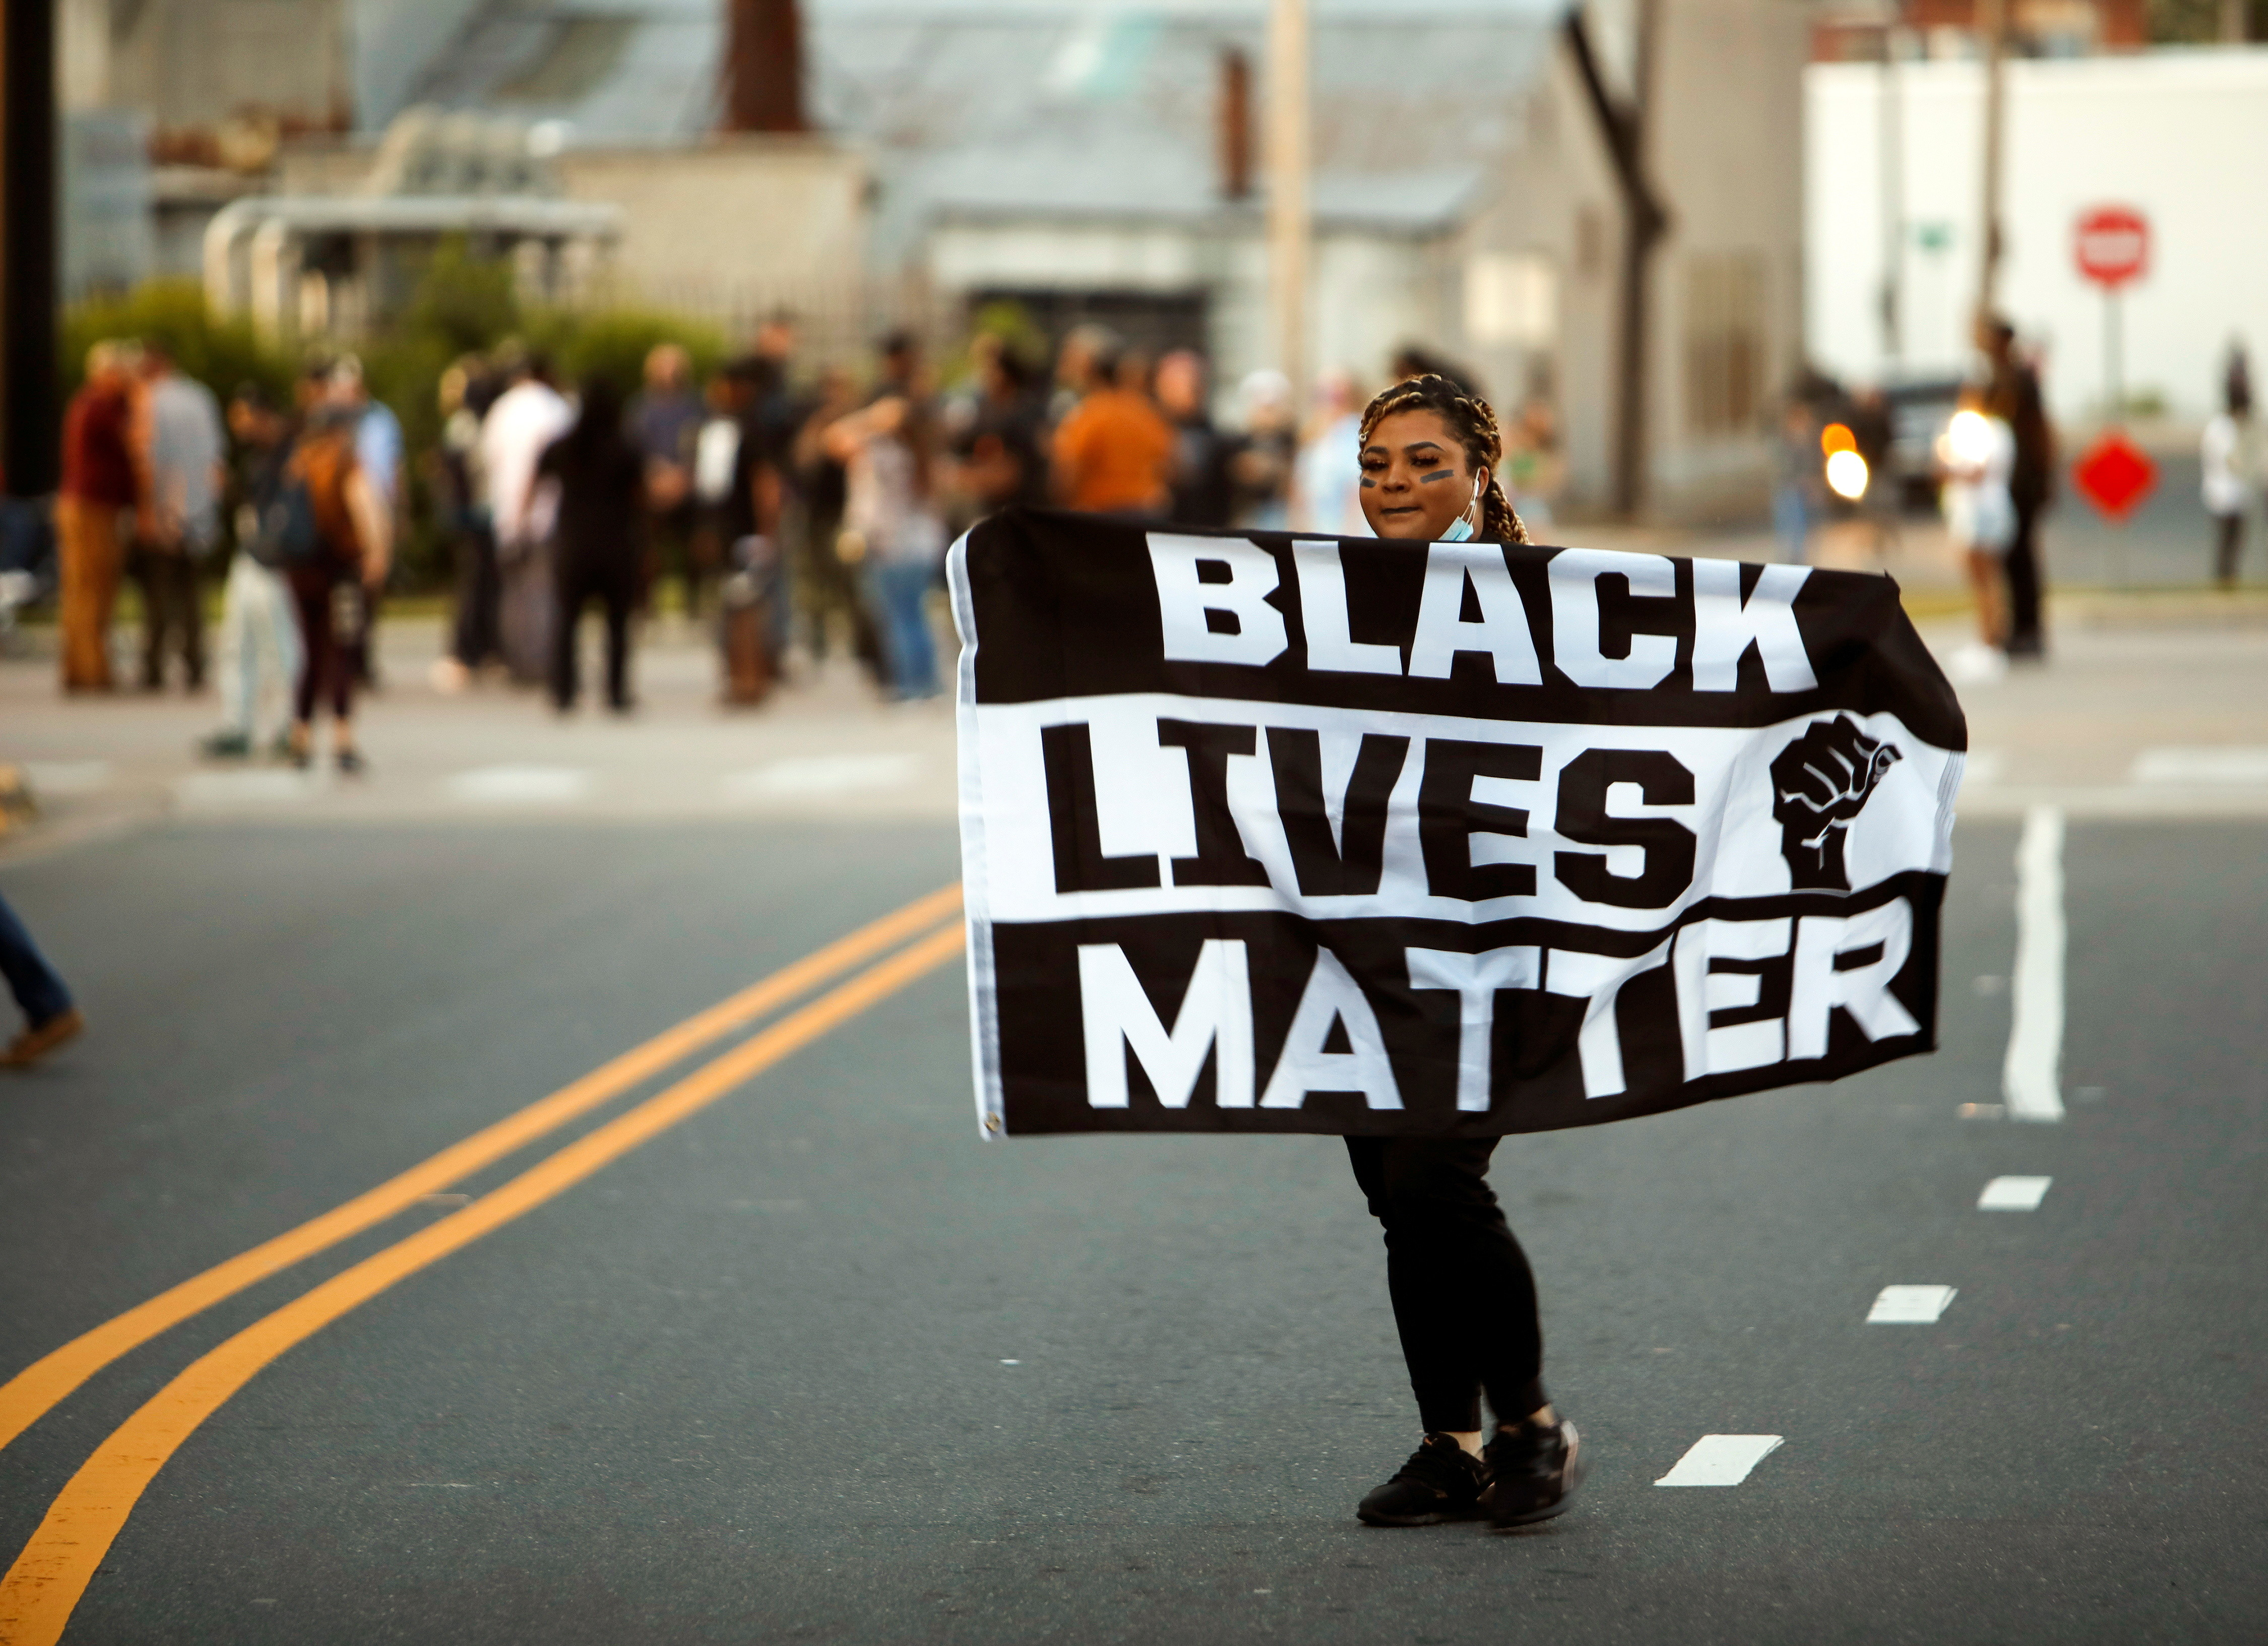 A protester carries a Black Lives Matter flag shortly before the start of a dawn to dusk curfew following the killing of Andrew Brown Jr. by sheriffs last week, in Elizabeth City, North Carolina, U.S. April 27, 2021.  REUTERS/Jonathan Drake - RC2O4N9W8T0V